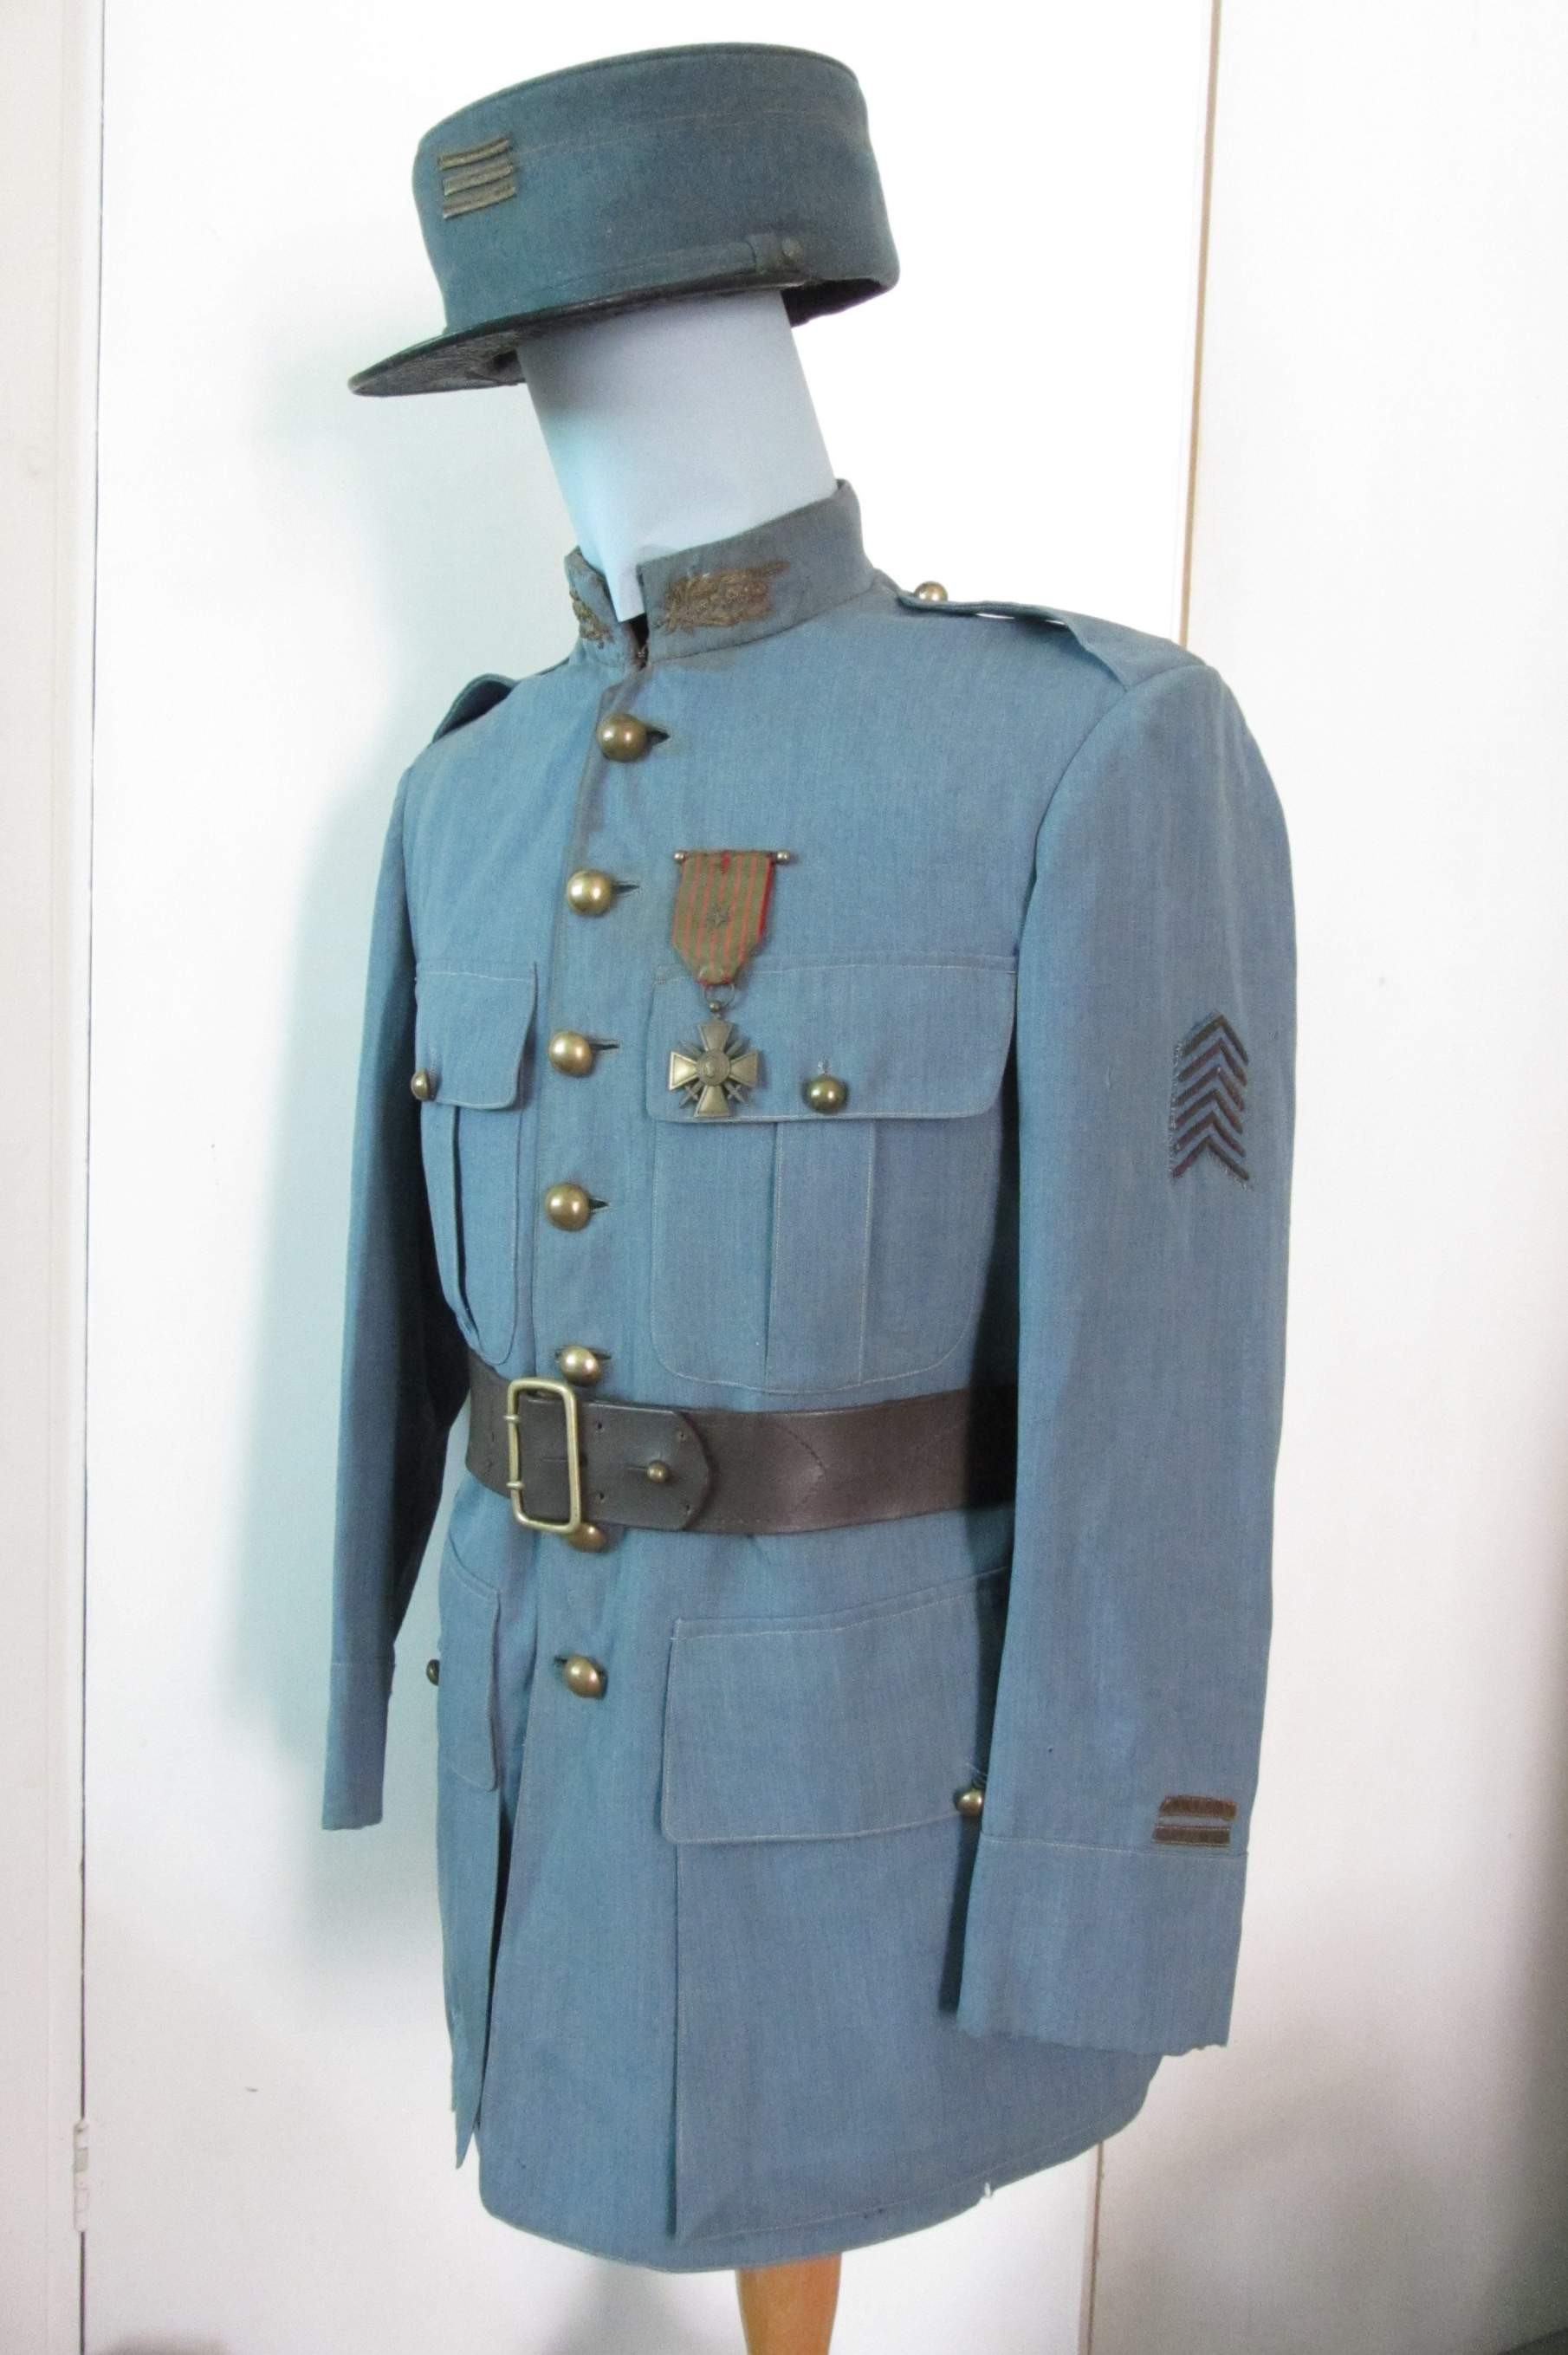 WW2 German, Soviet, Allied militaria, uniforms, awards